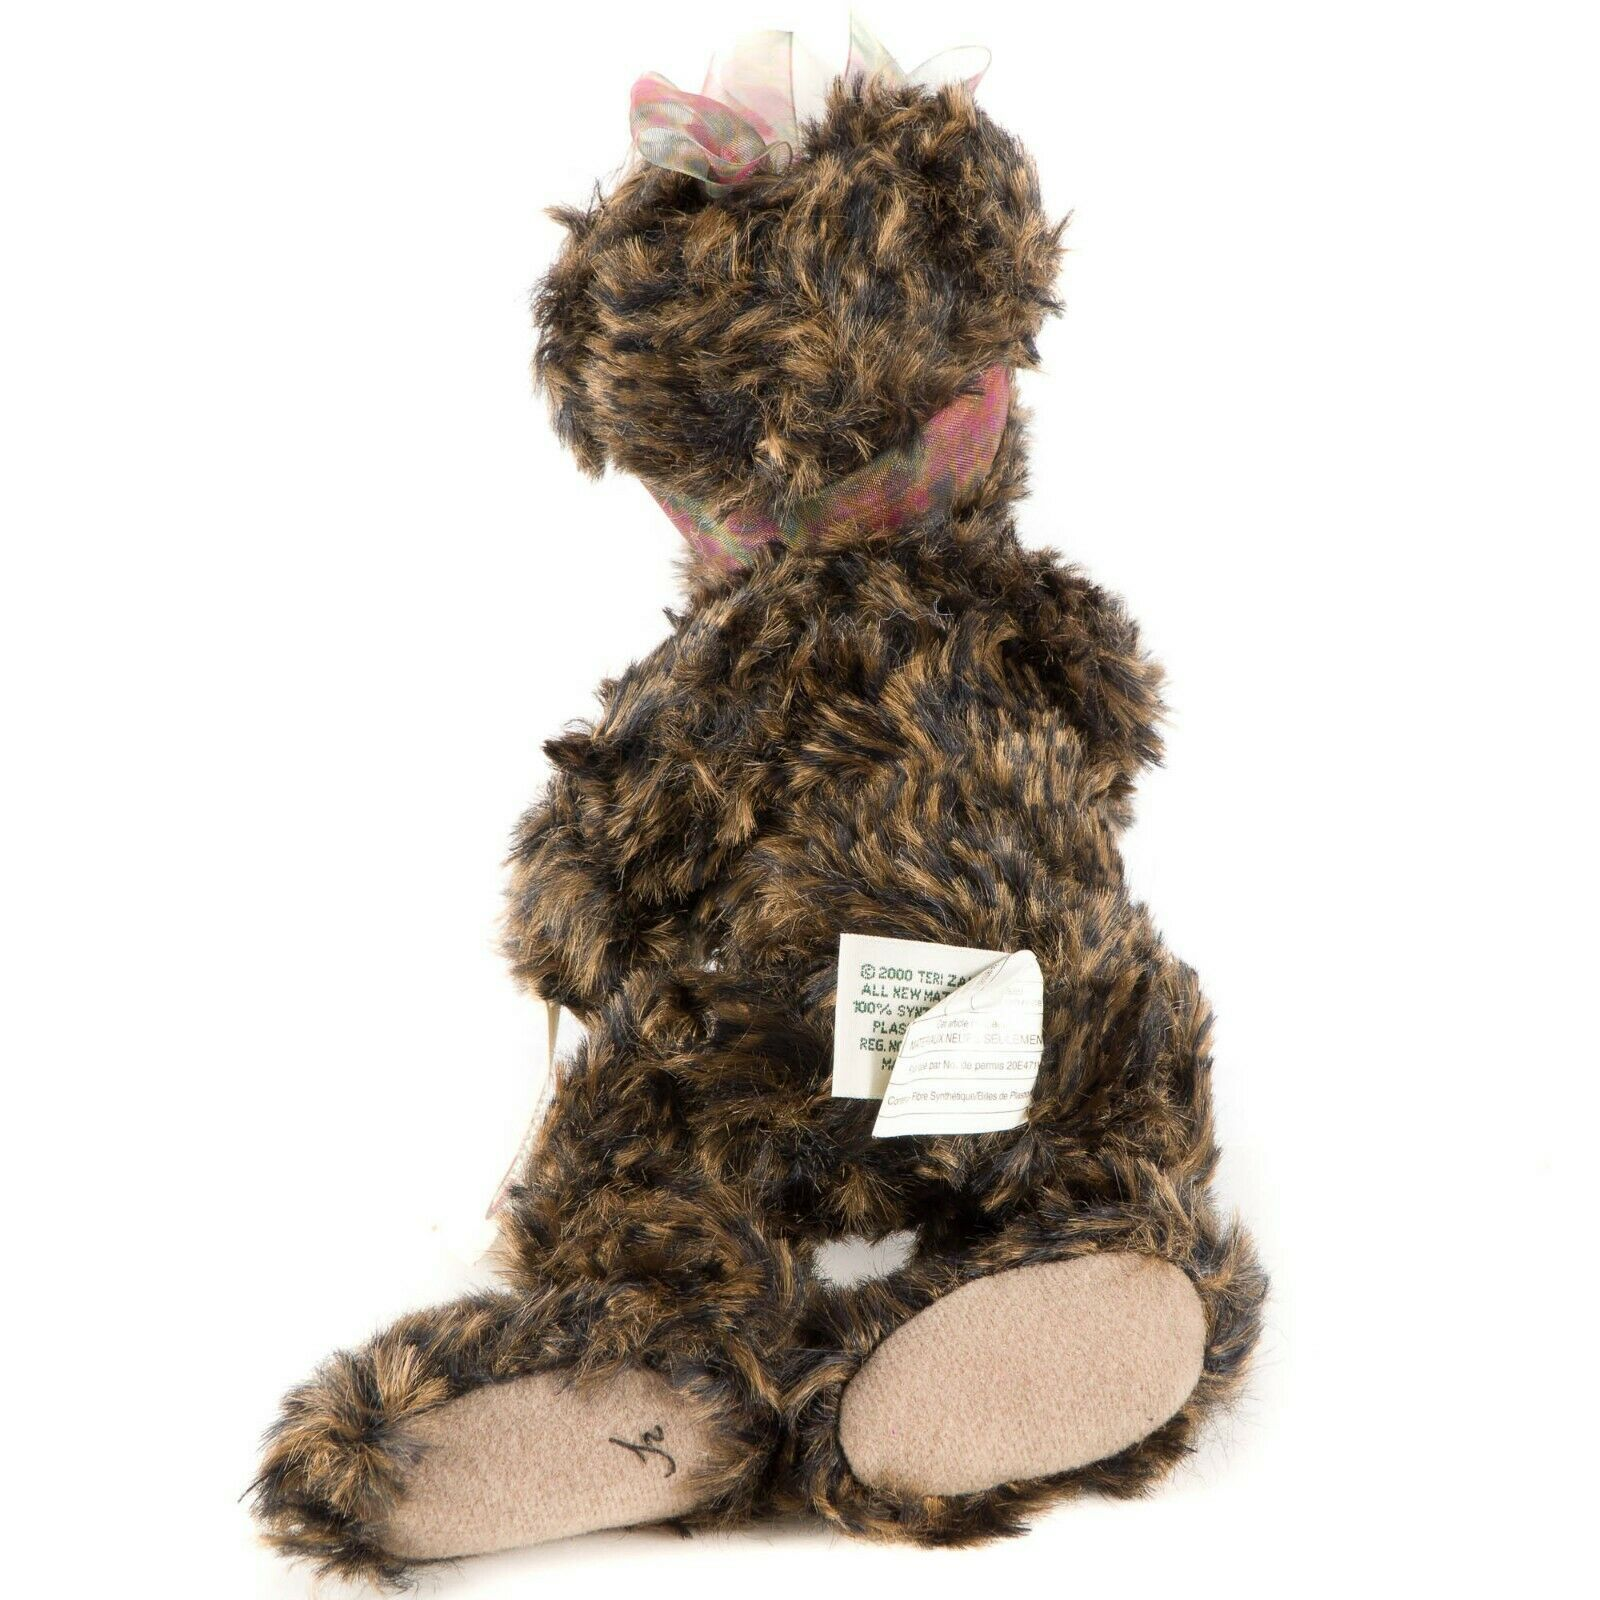 """Ganz Cottage Collectibles Lexi Teddy Bear 11"""" First Edition Scarf Tag CC1801 image 4"""